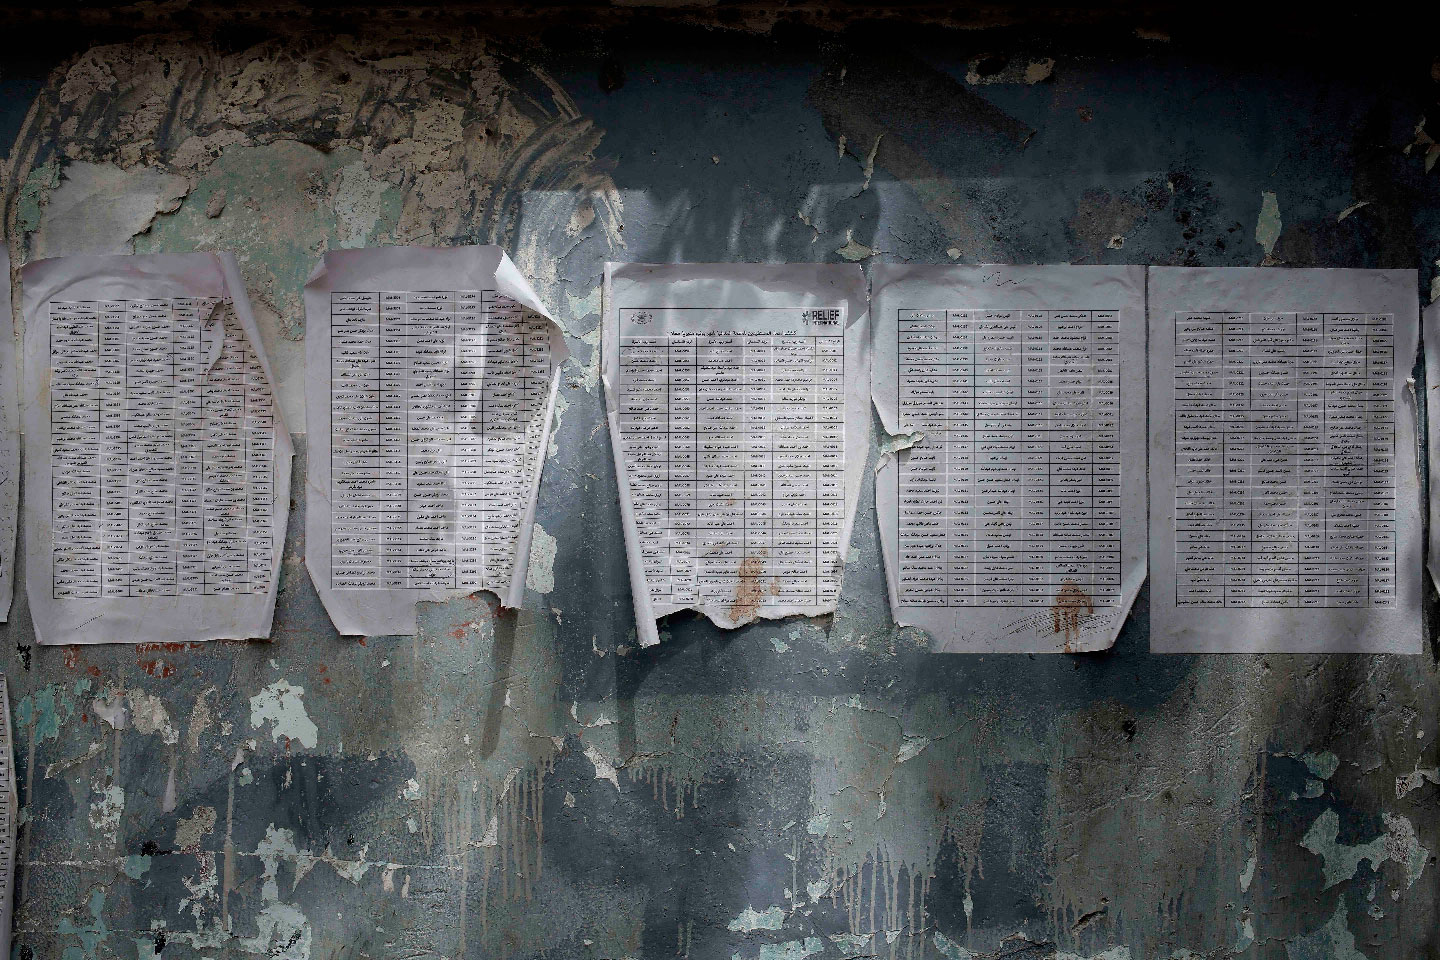 A worn-out list of registered names for aid by Relief International, part of the World Food Program, is posted in Aden, Yemen on July 23, 2018.